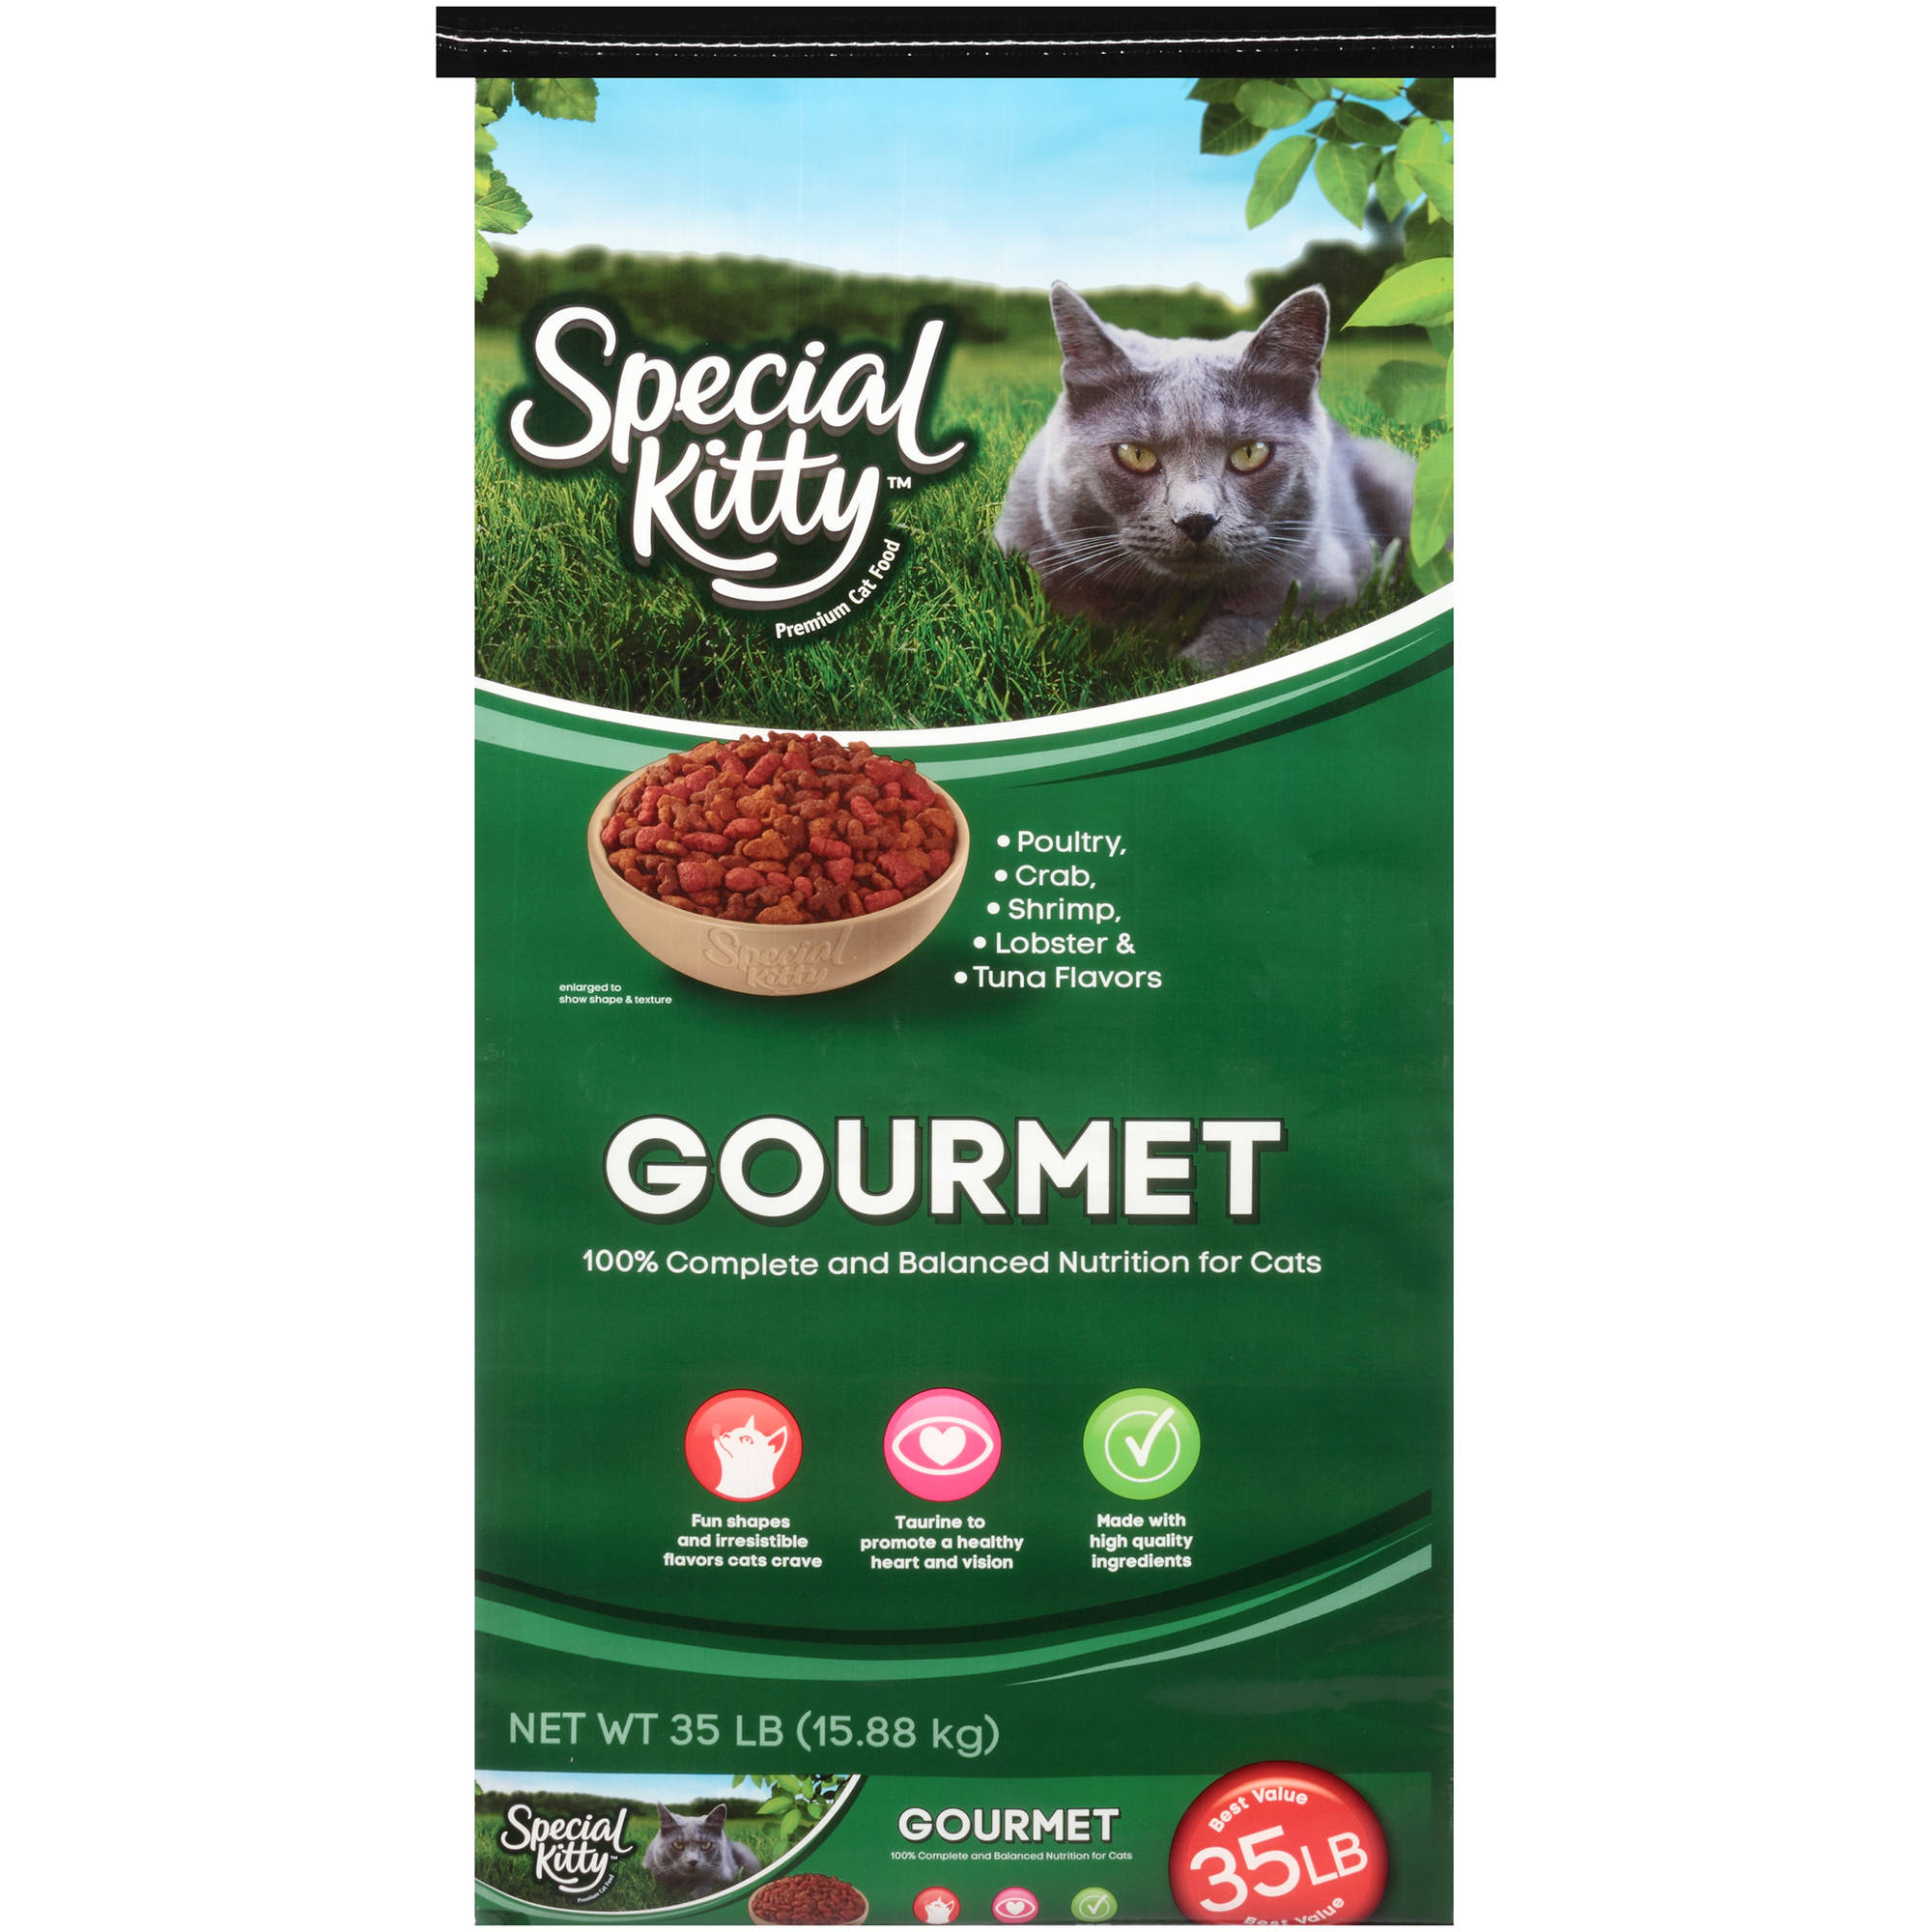 Special Kitty Gourmet Dry Cat Food, 35 lbs